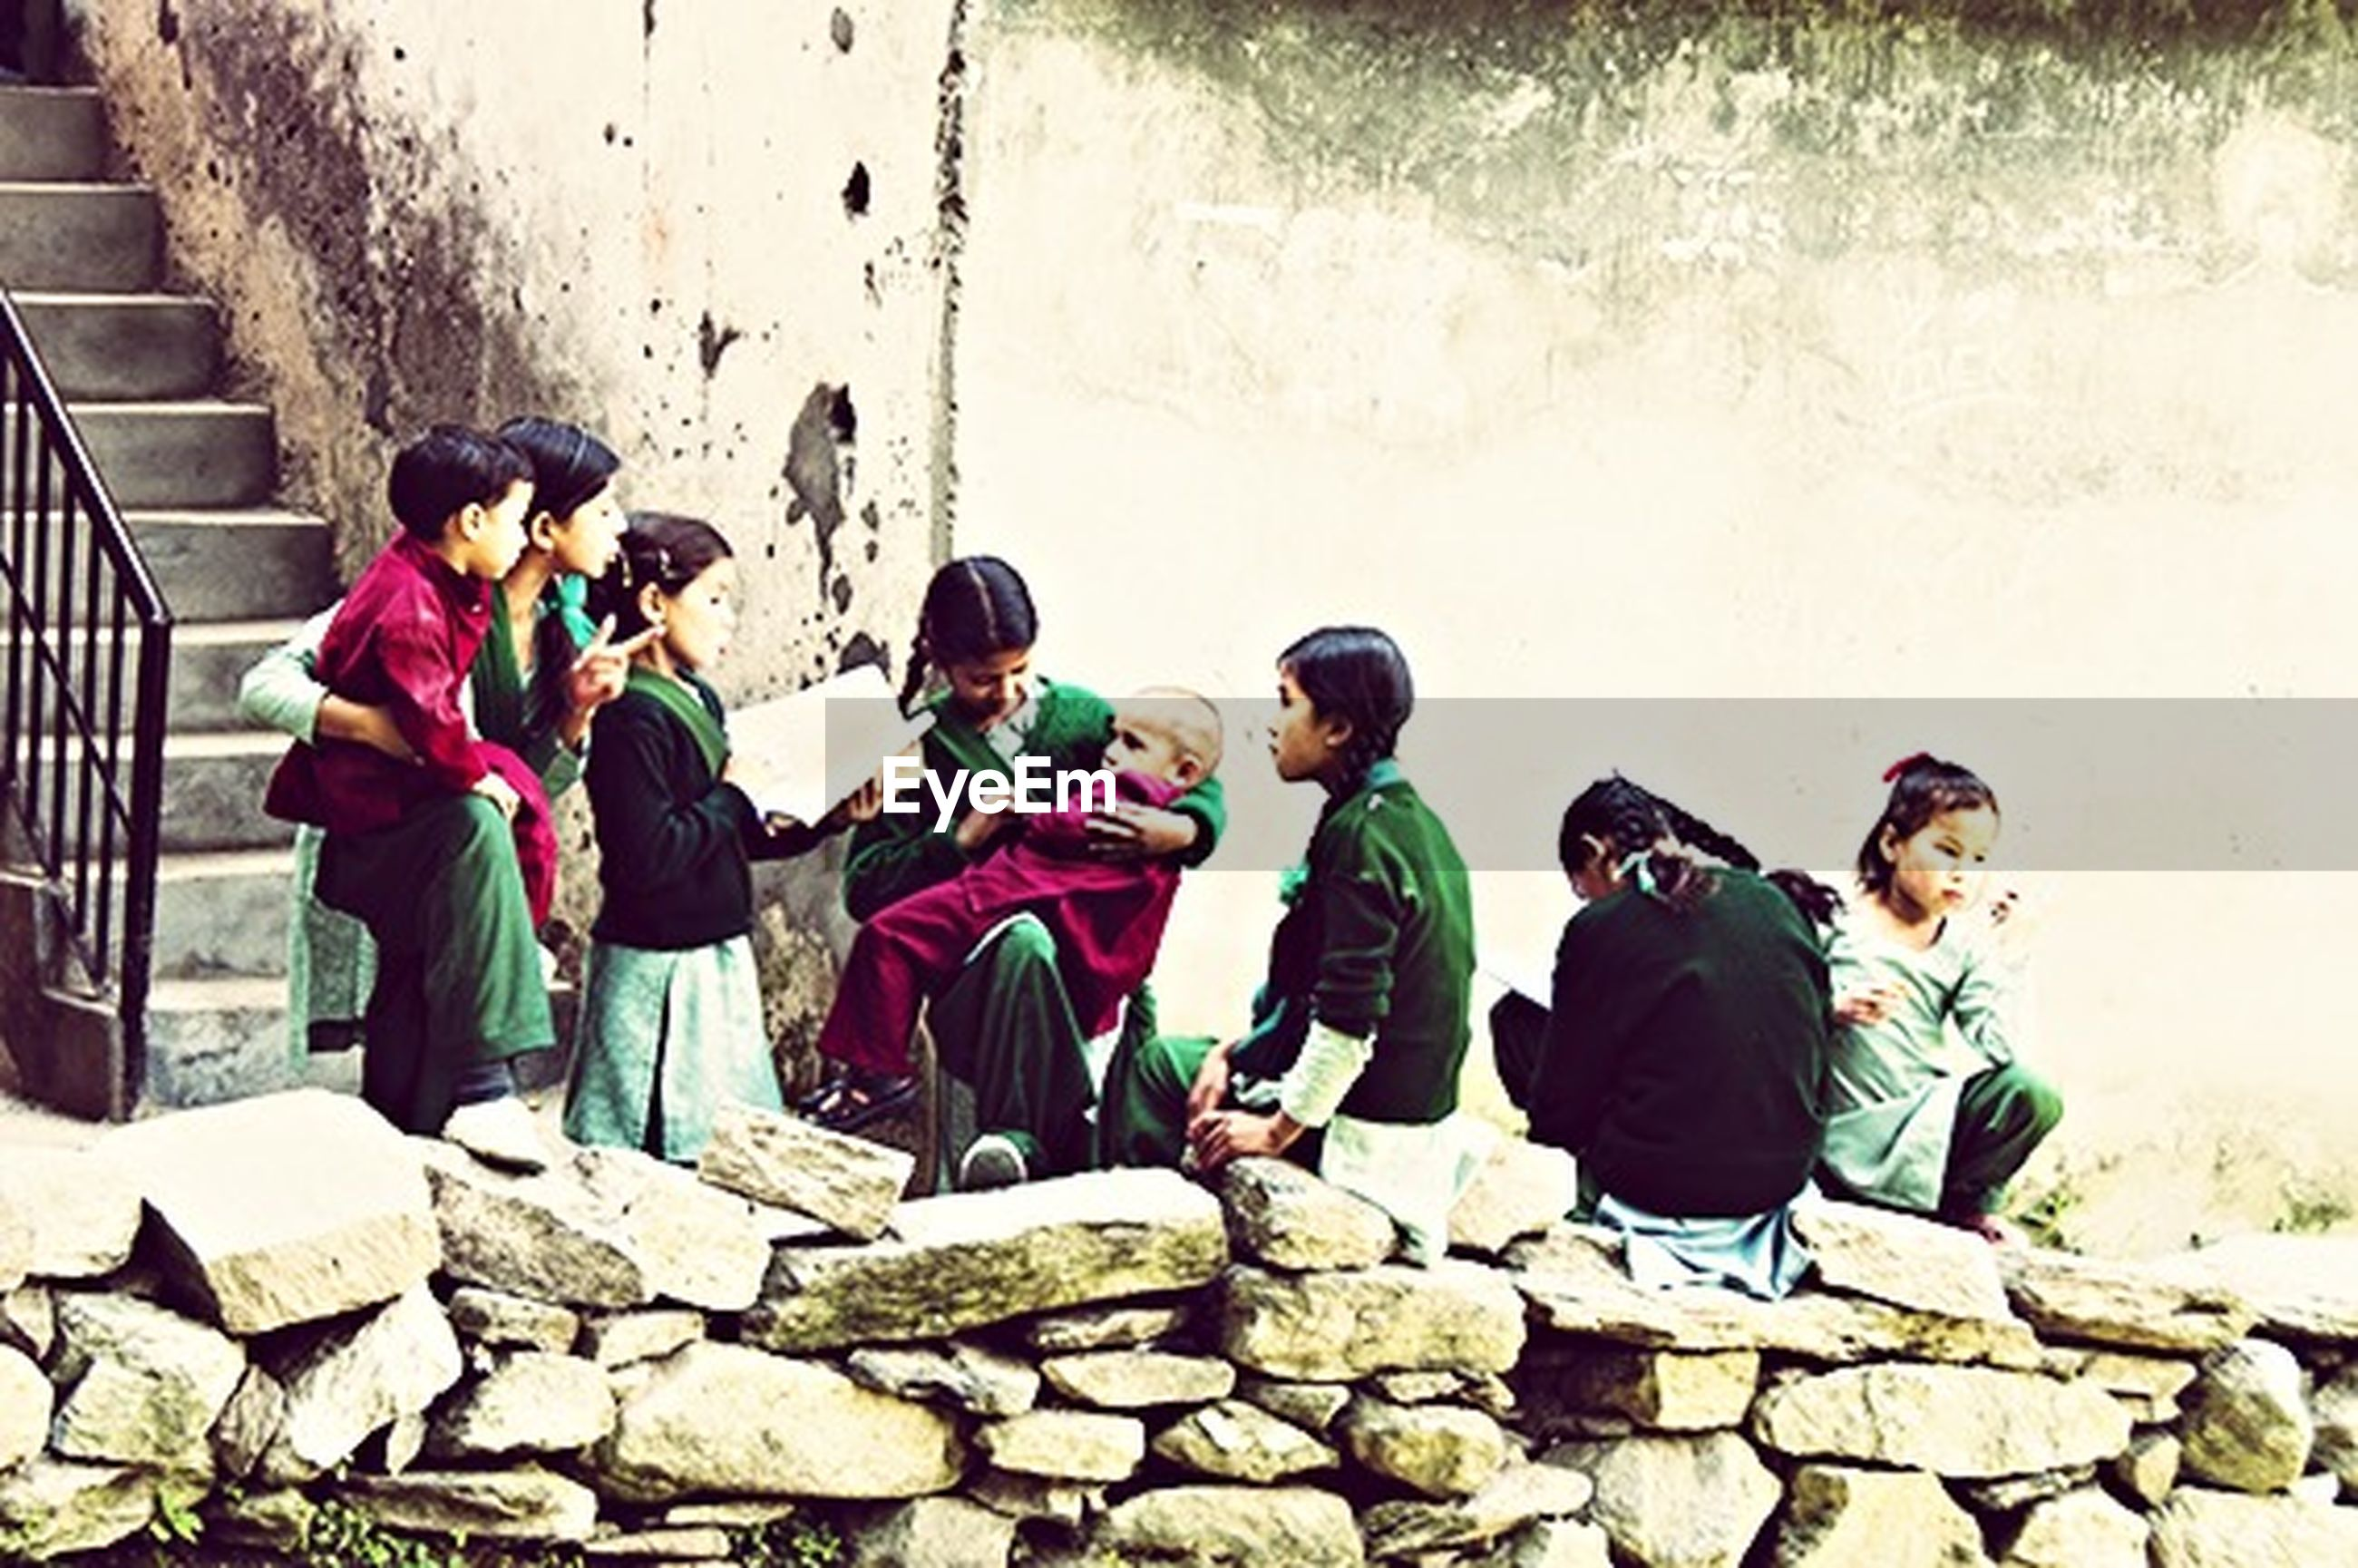 lifestyles, togetherness, leisure activity, men, casual clothing, full length, bonding, boys, friendship, person, love, wall - building feature, sitting, rear view, standing, built structure, day, architecture